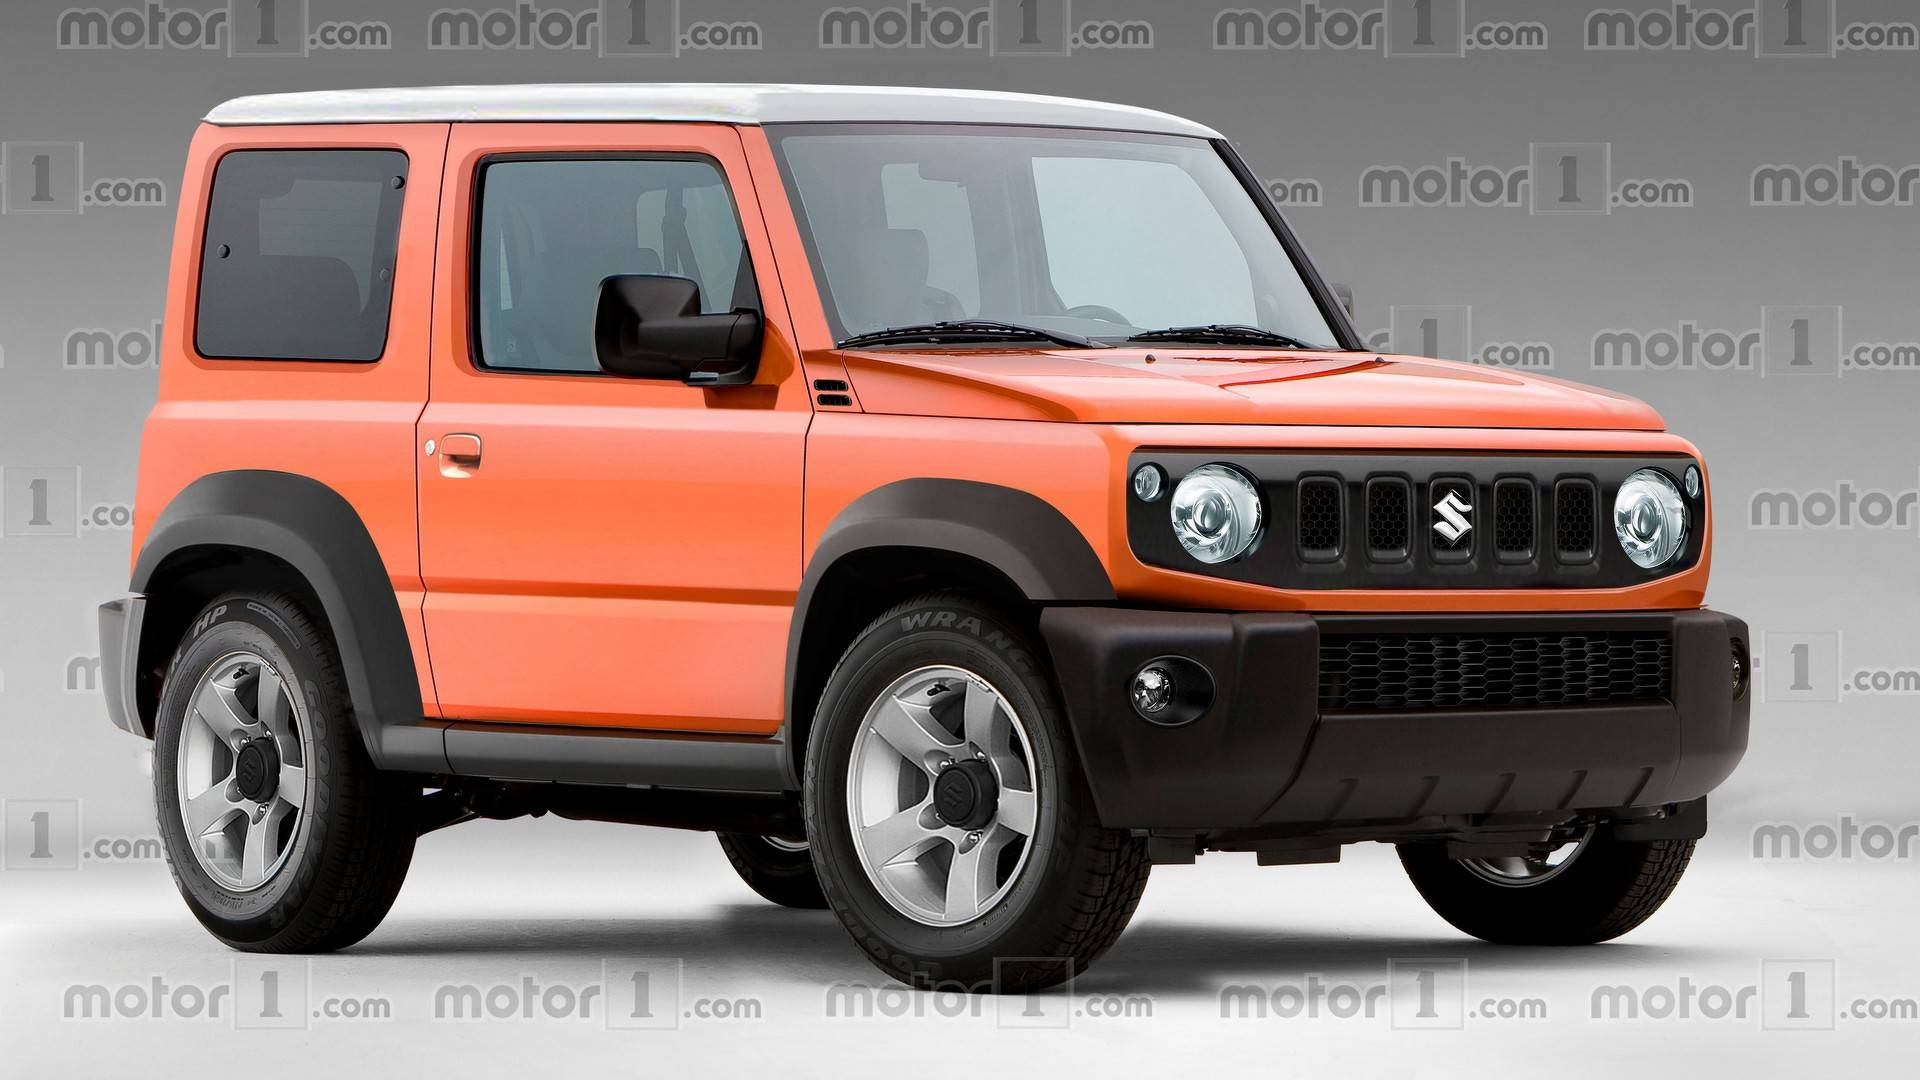 Suzuki Jimny Production Ends, Next Generation Debuting Late 2018 - Flywheel